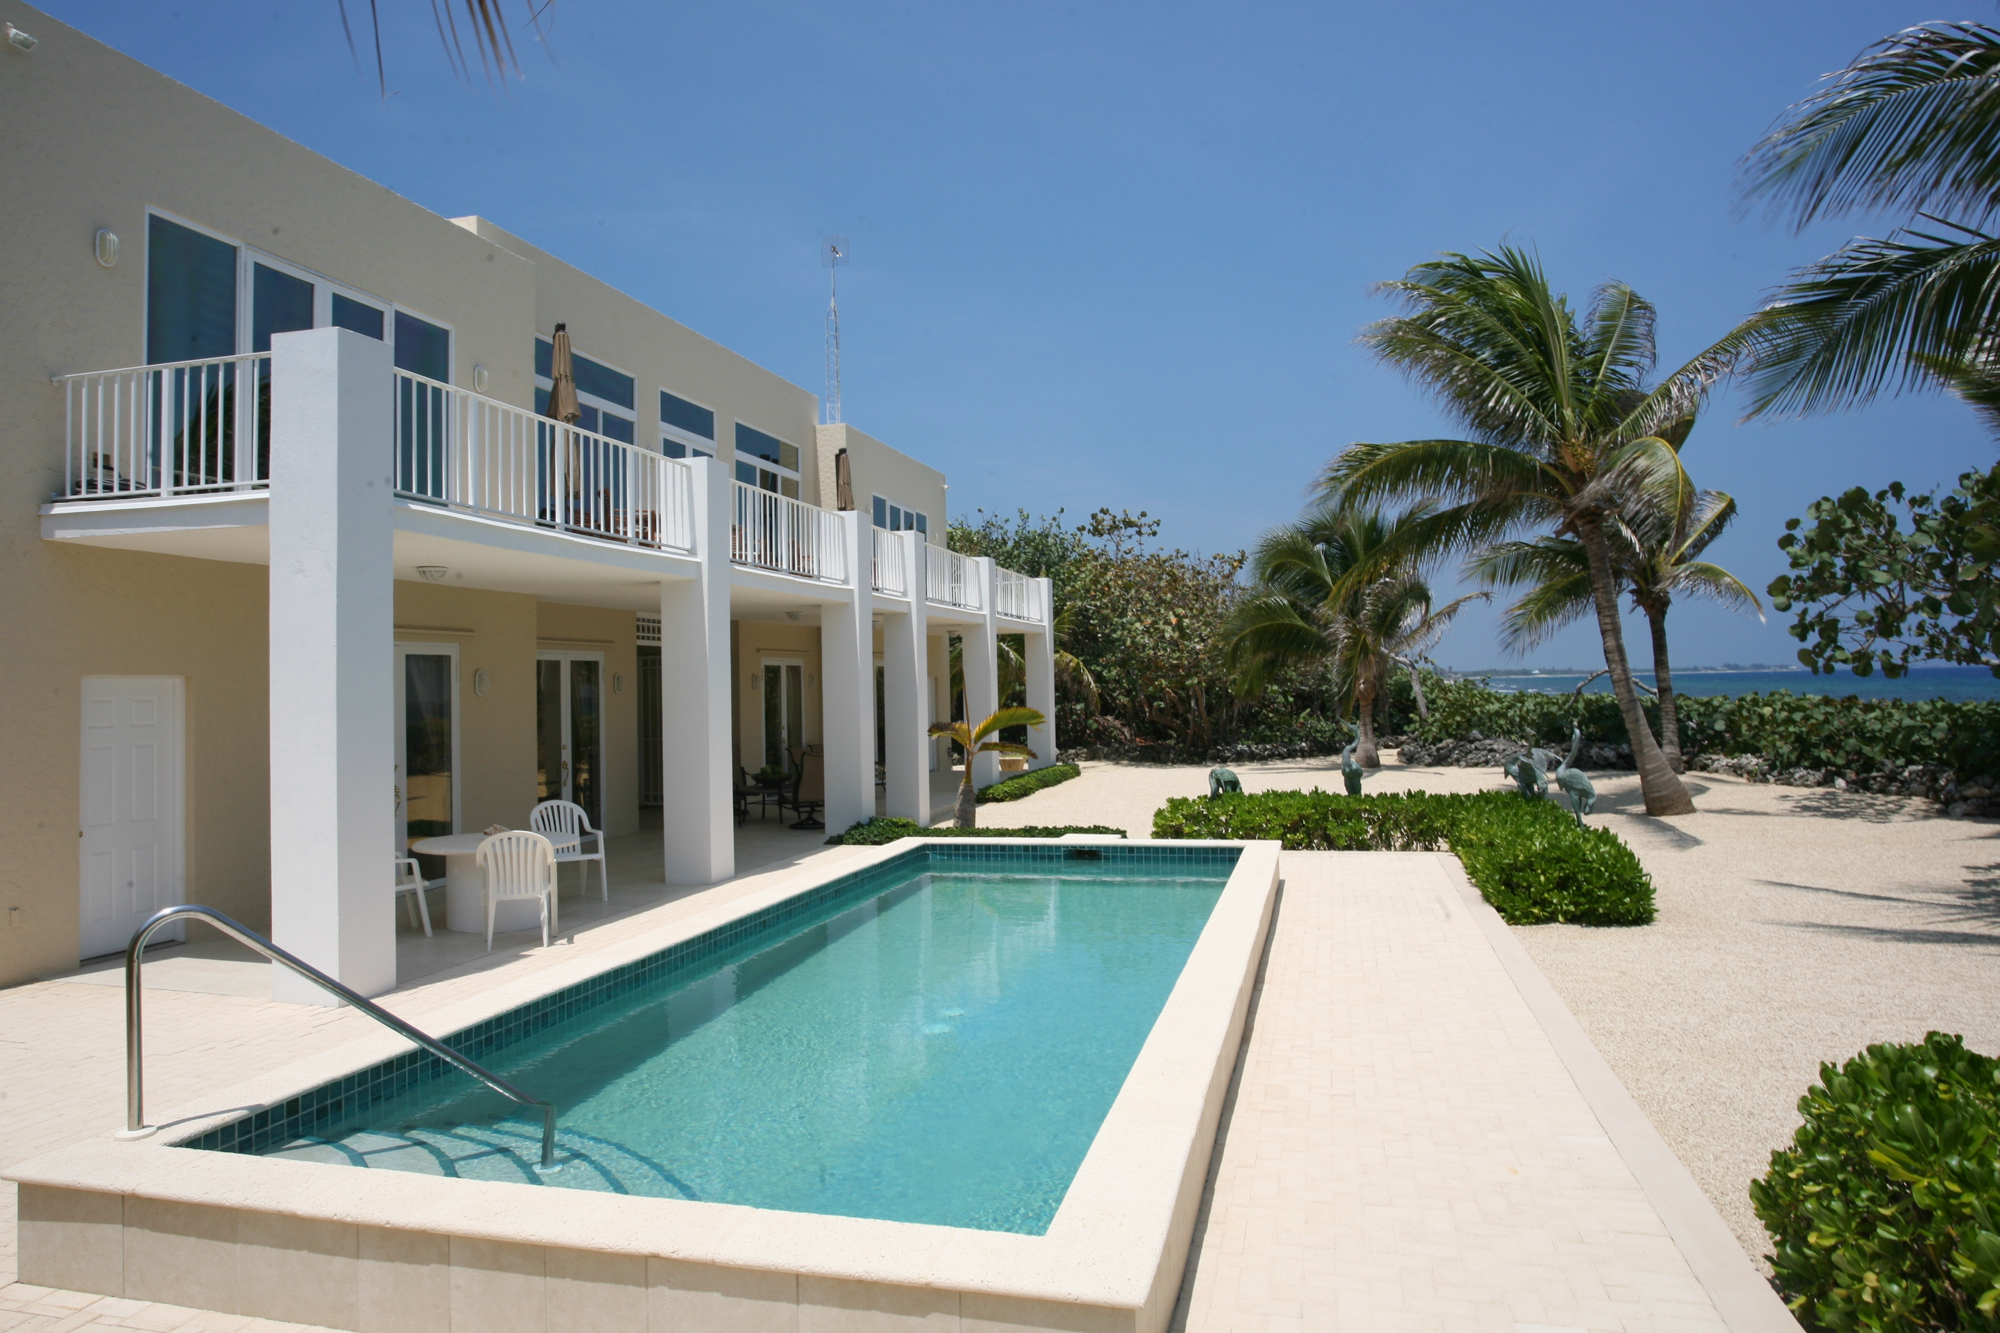 Single Family Home for Sale at Villa Caymanas North Side, Grand Cayman, Cayman Islands